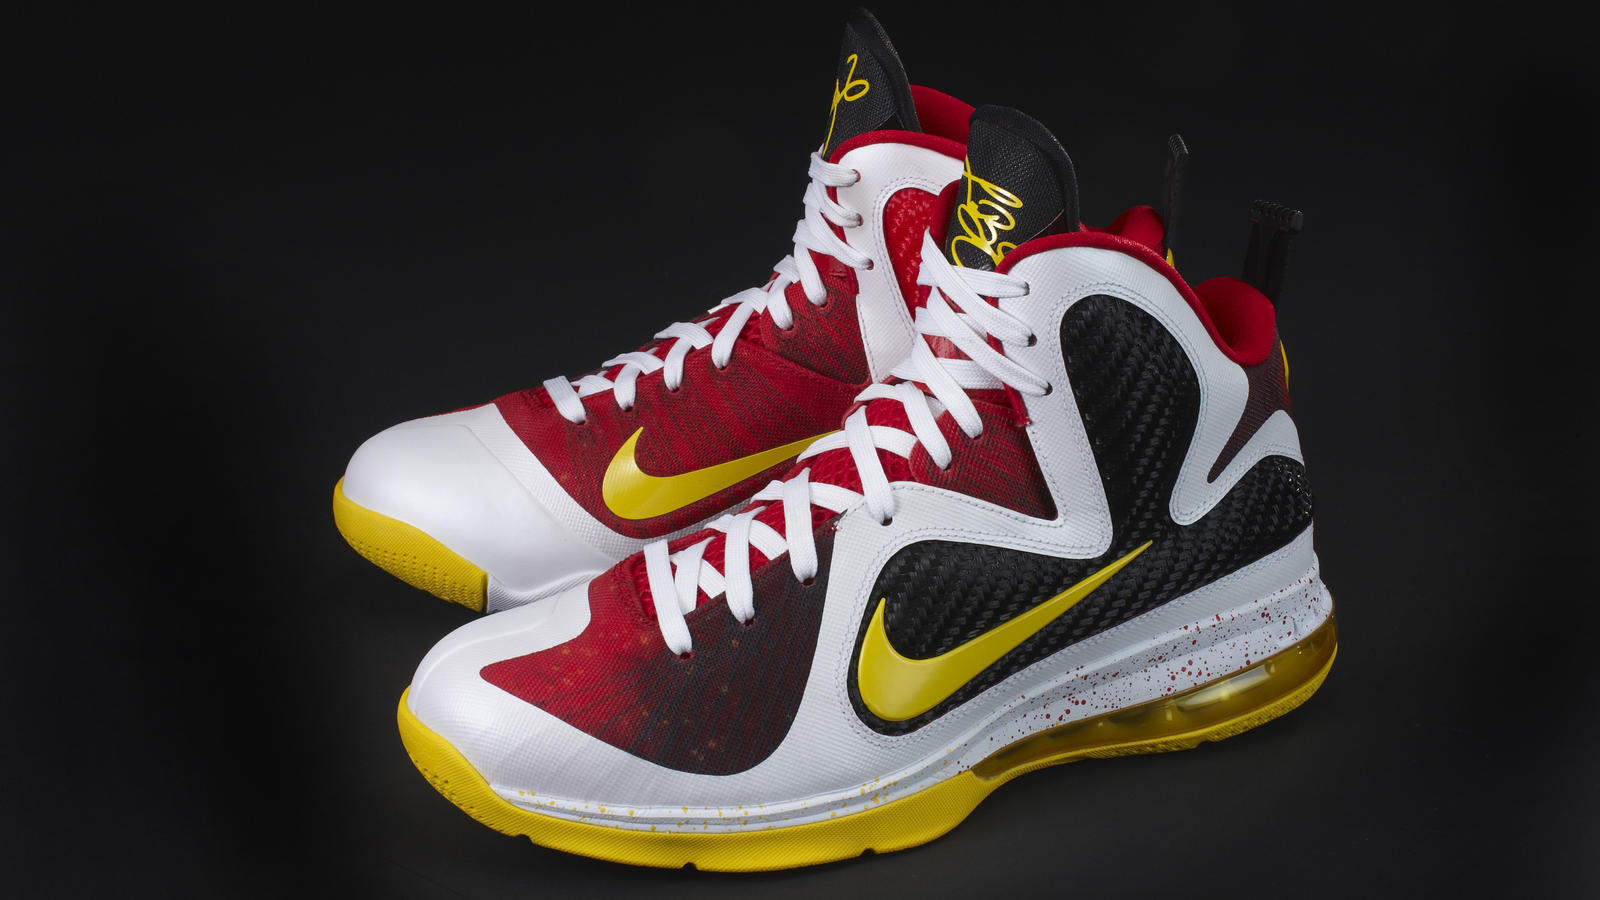 Ho11_BB_Lebron9_pair_lateral